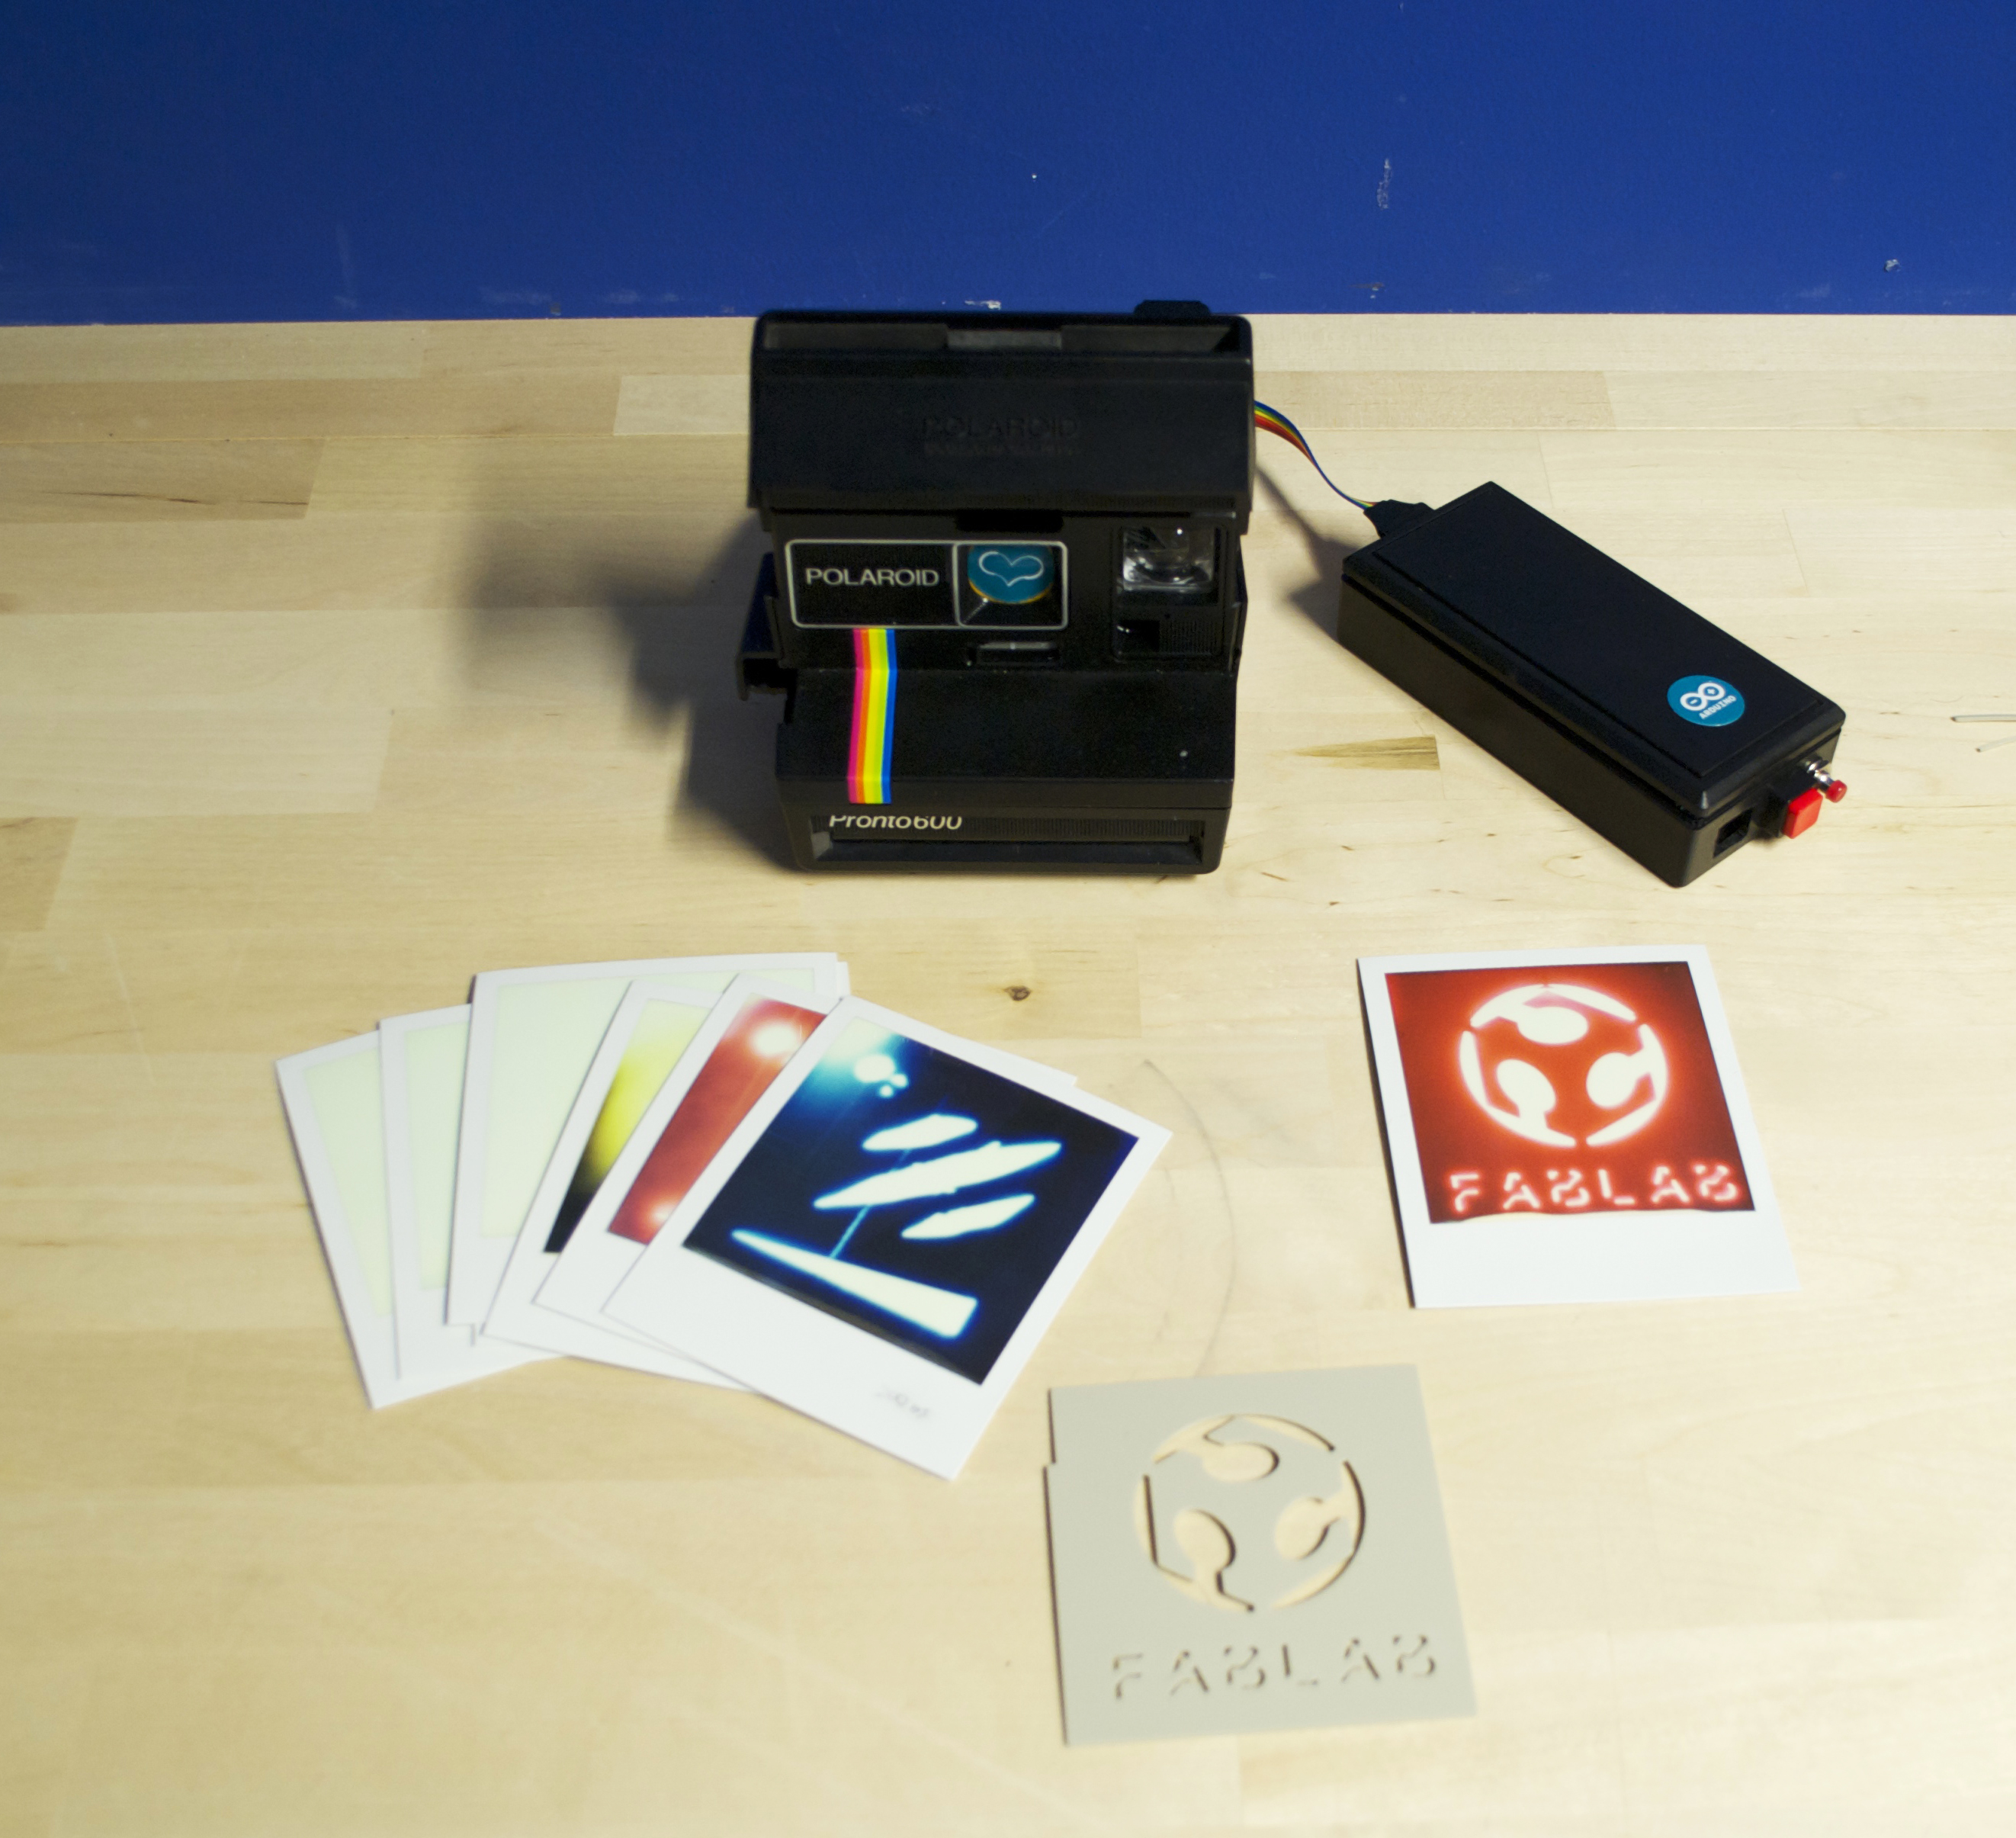 Business Card with Polaroid + Arduino